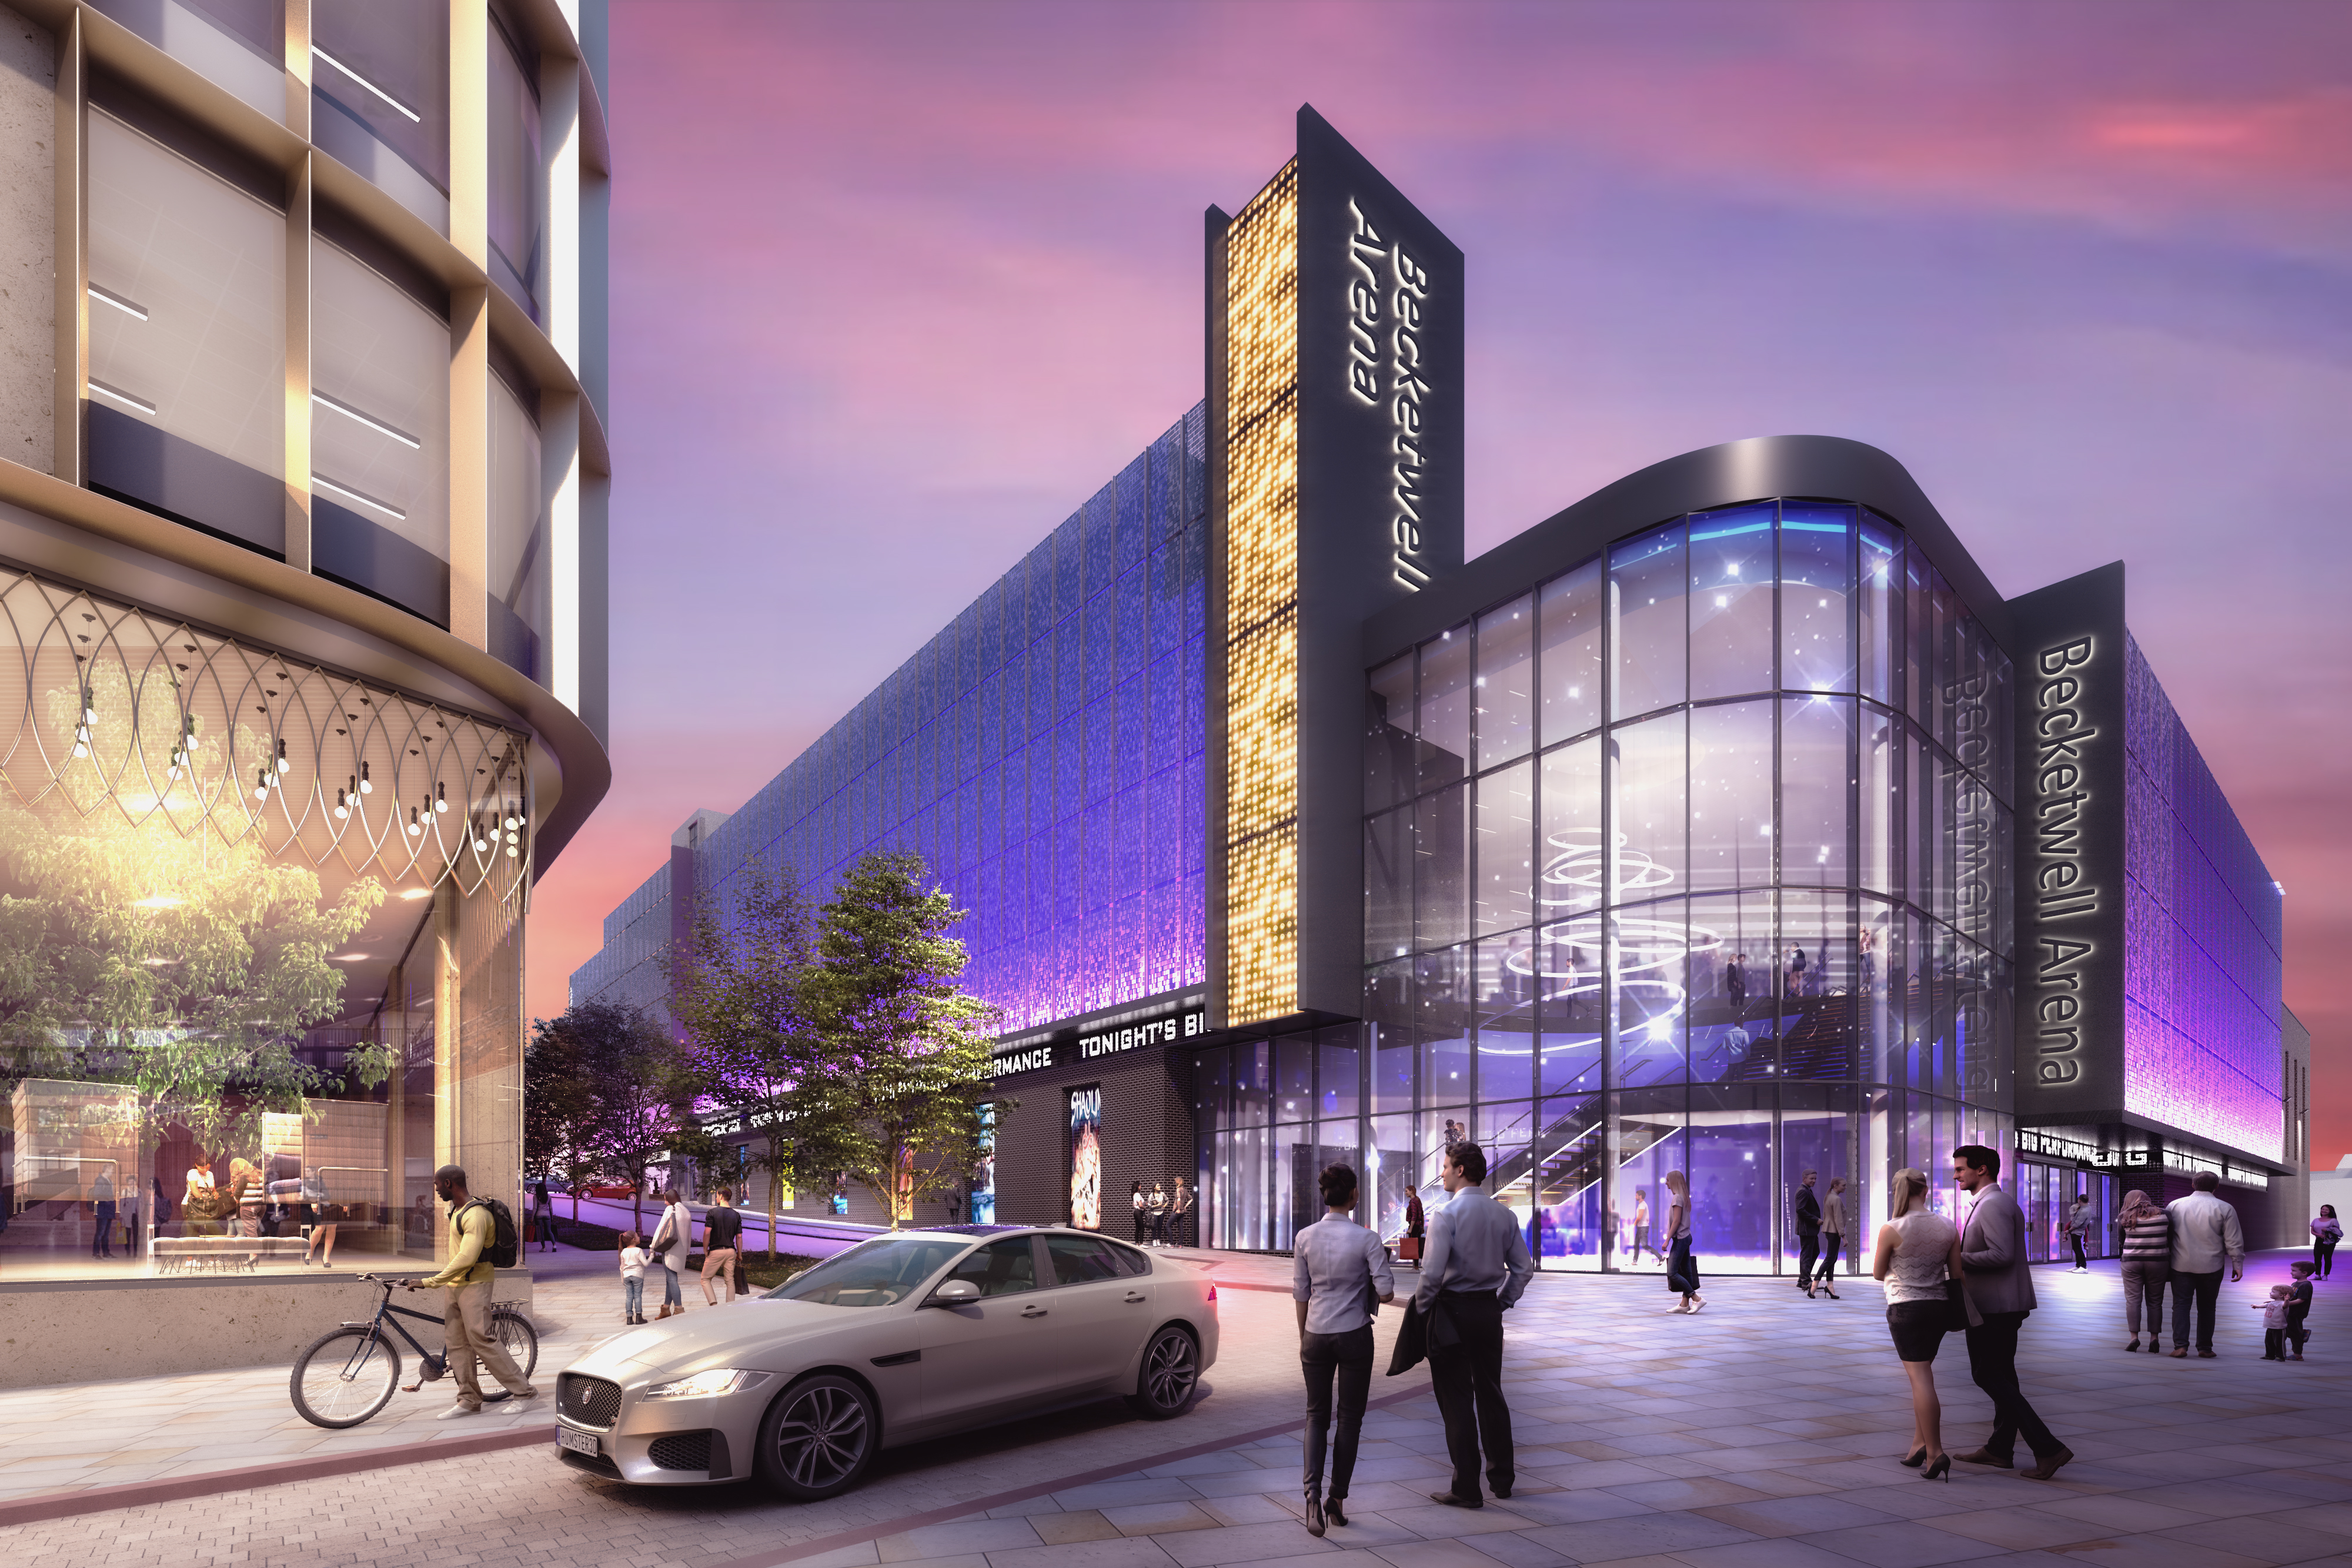 ASM GLOBAL ANNOUNCED AS OPERATOR OF DERBY'S NEW 3,500 CAPACITY PERFORMANCE VENUE AND FUNDING DEAL EXCHANGED WITH DERBY CITY COUNCIL